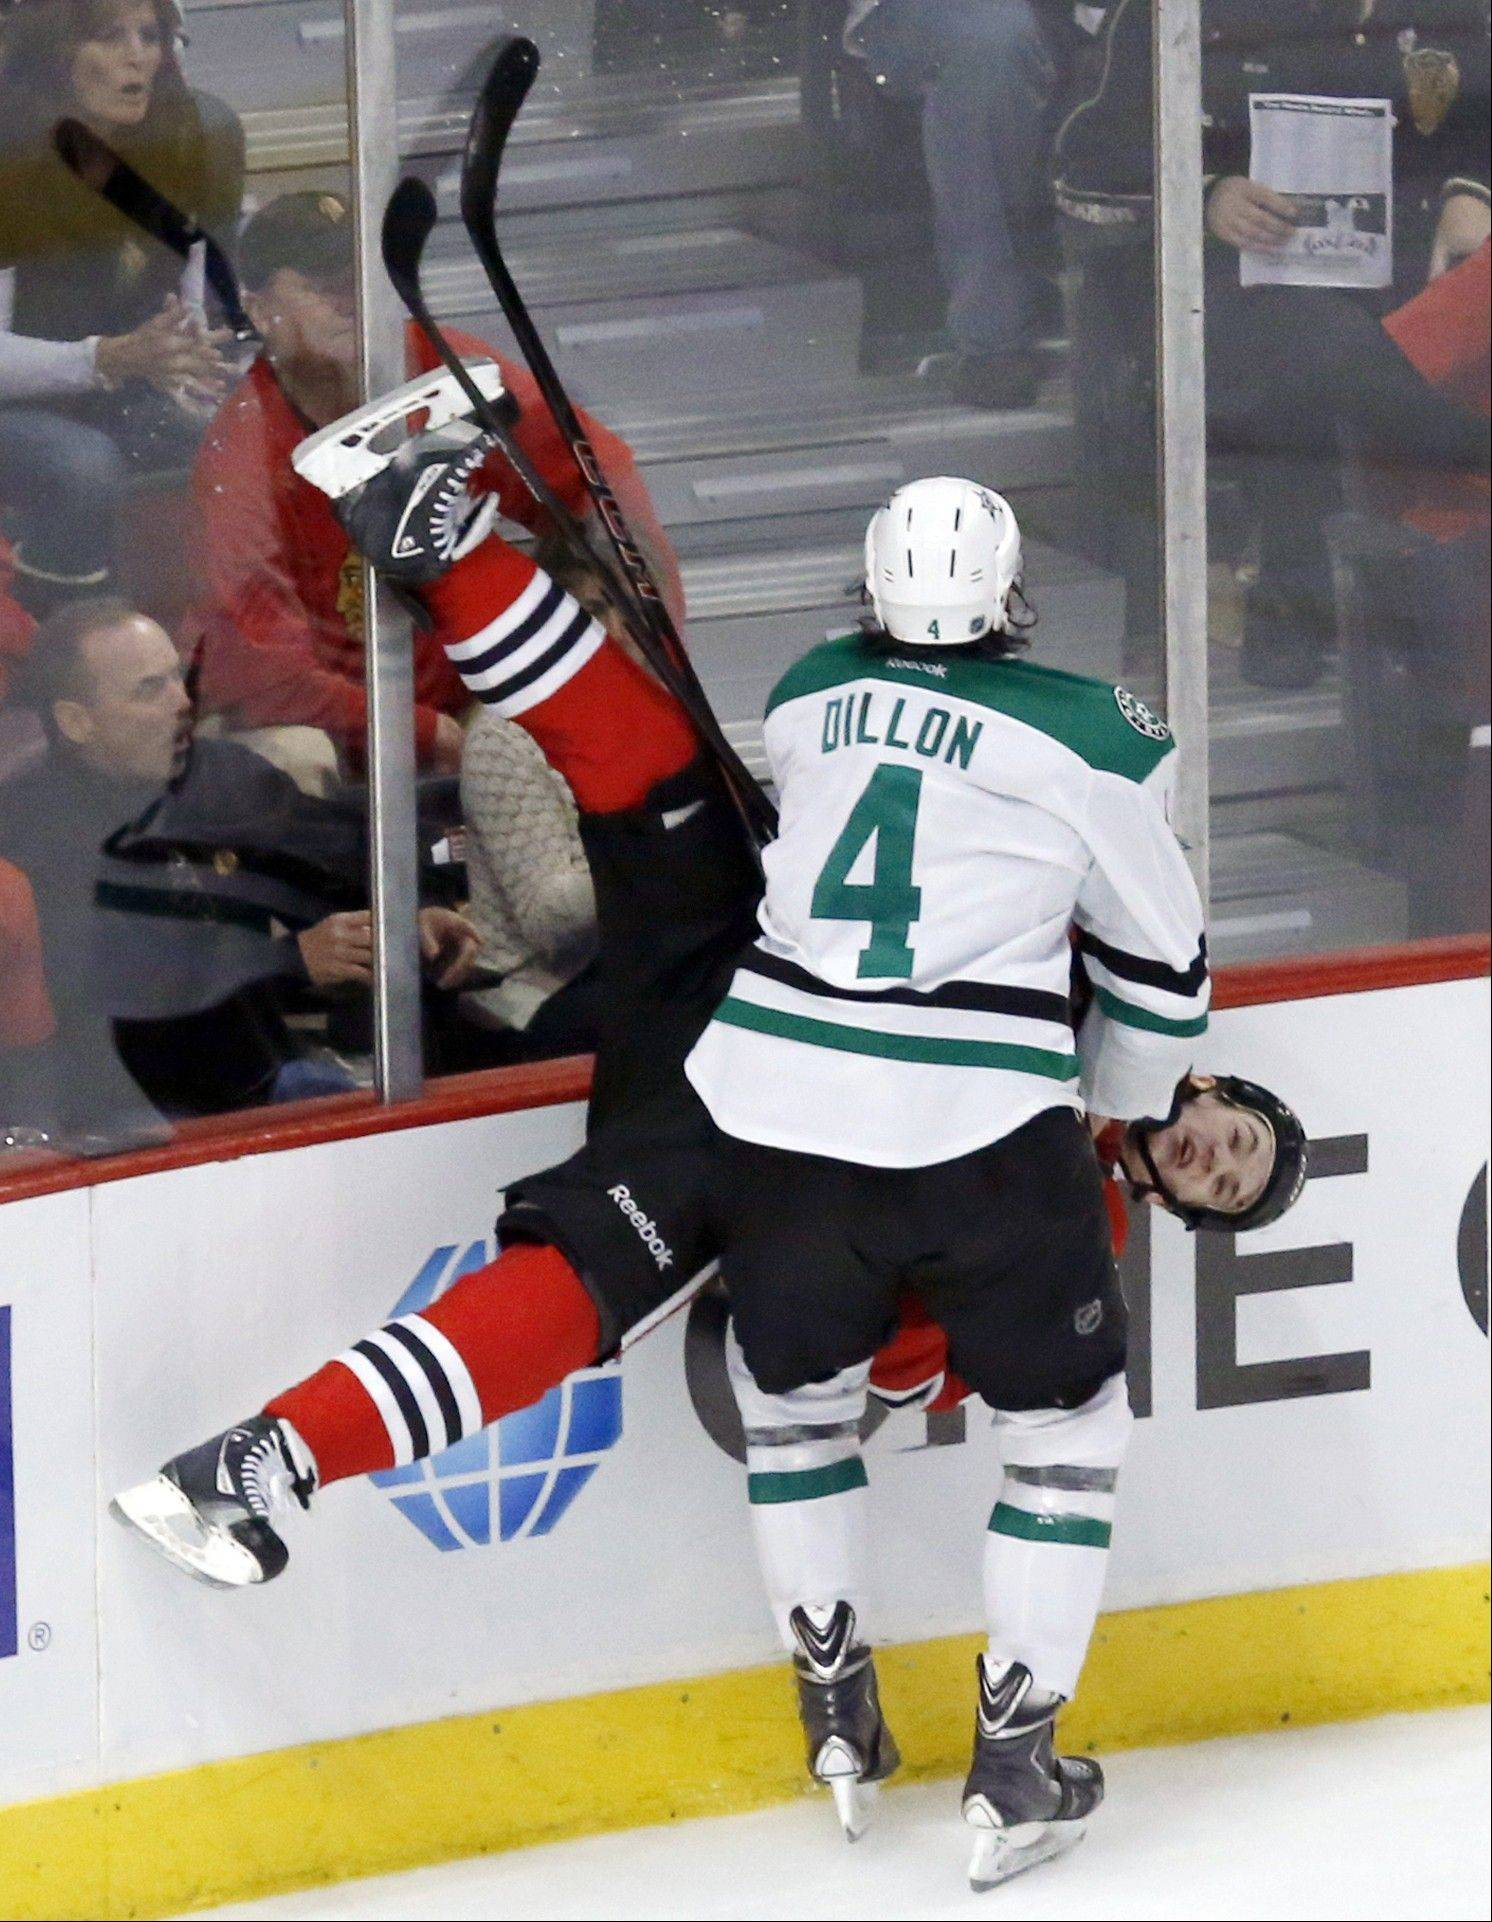 This check by Stars defenseman Brenden Dillon against Andrew Shaw in the third period of Tuesday�s 4-3 loss will keep the Blackhawks center out of action today in Minnesota against the Wild.